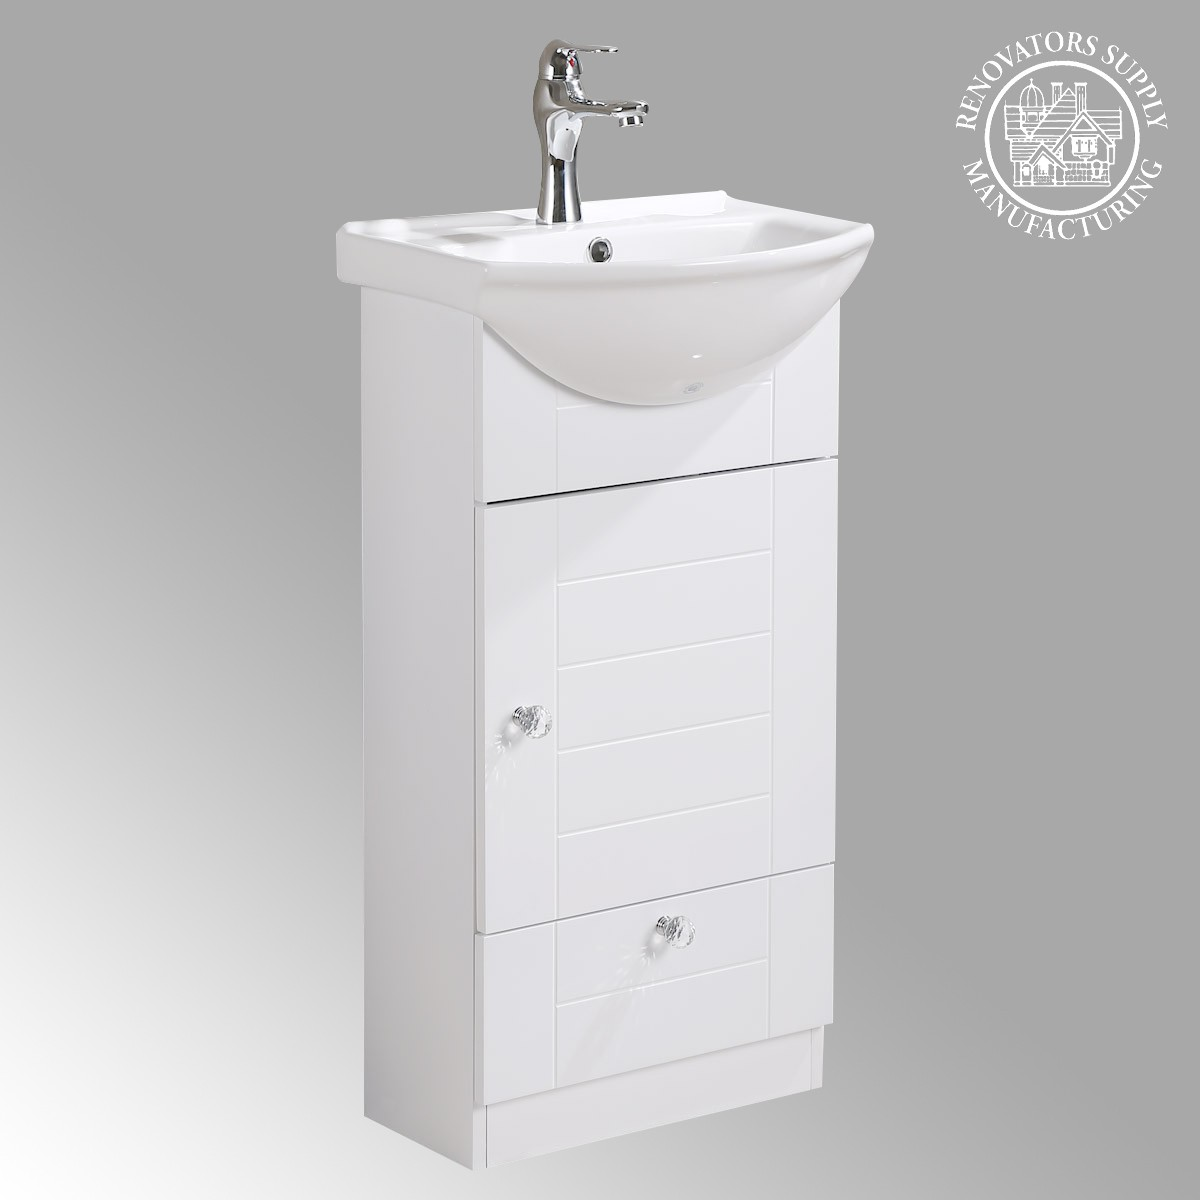 details about small cabinet vanity wall mount white